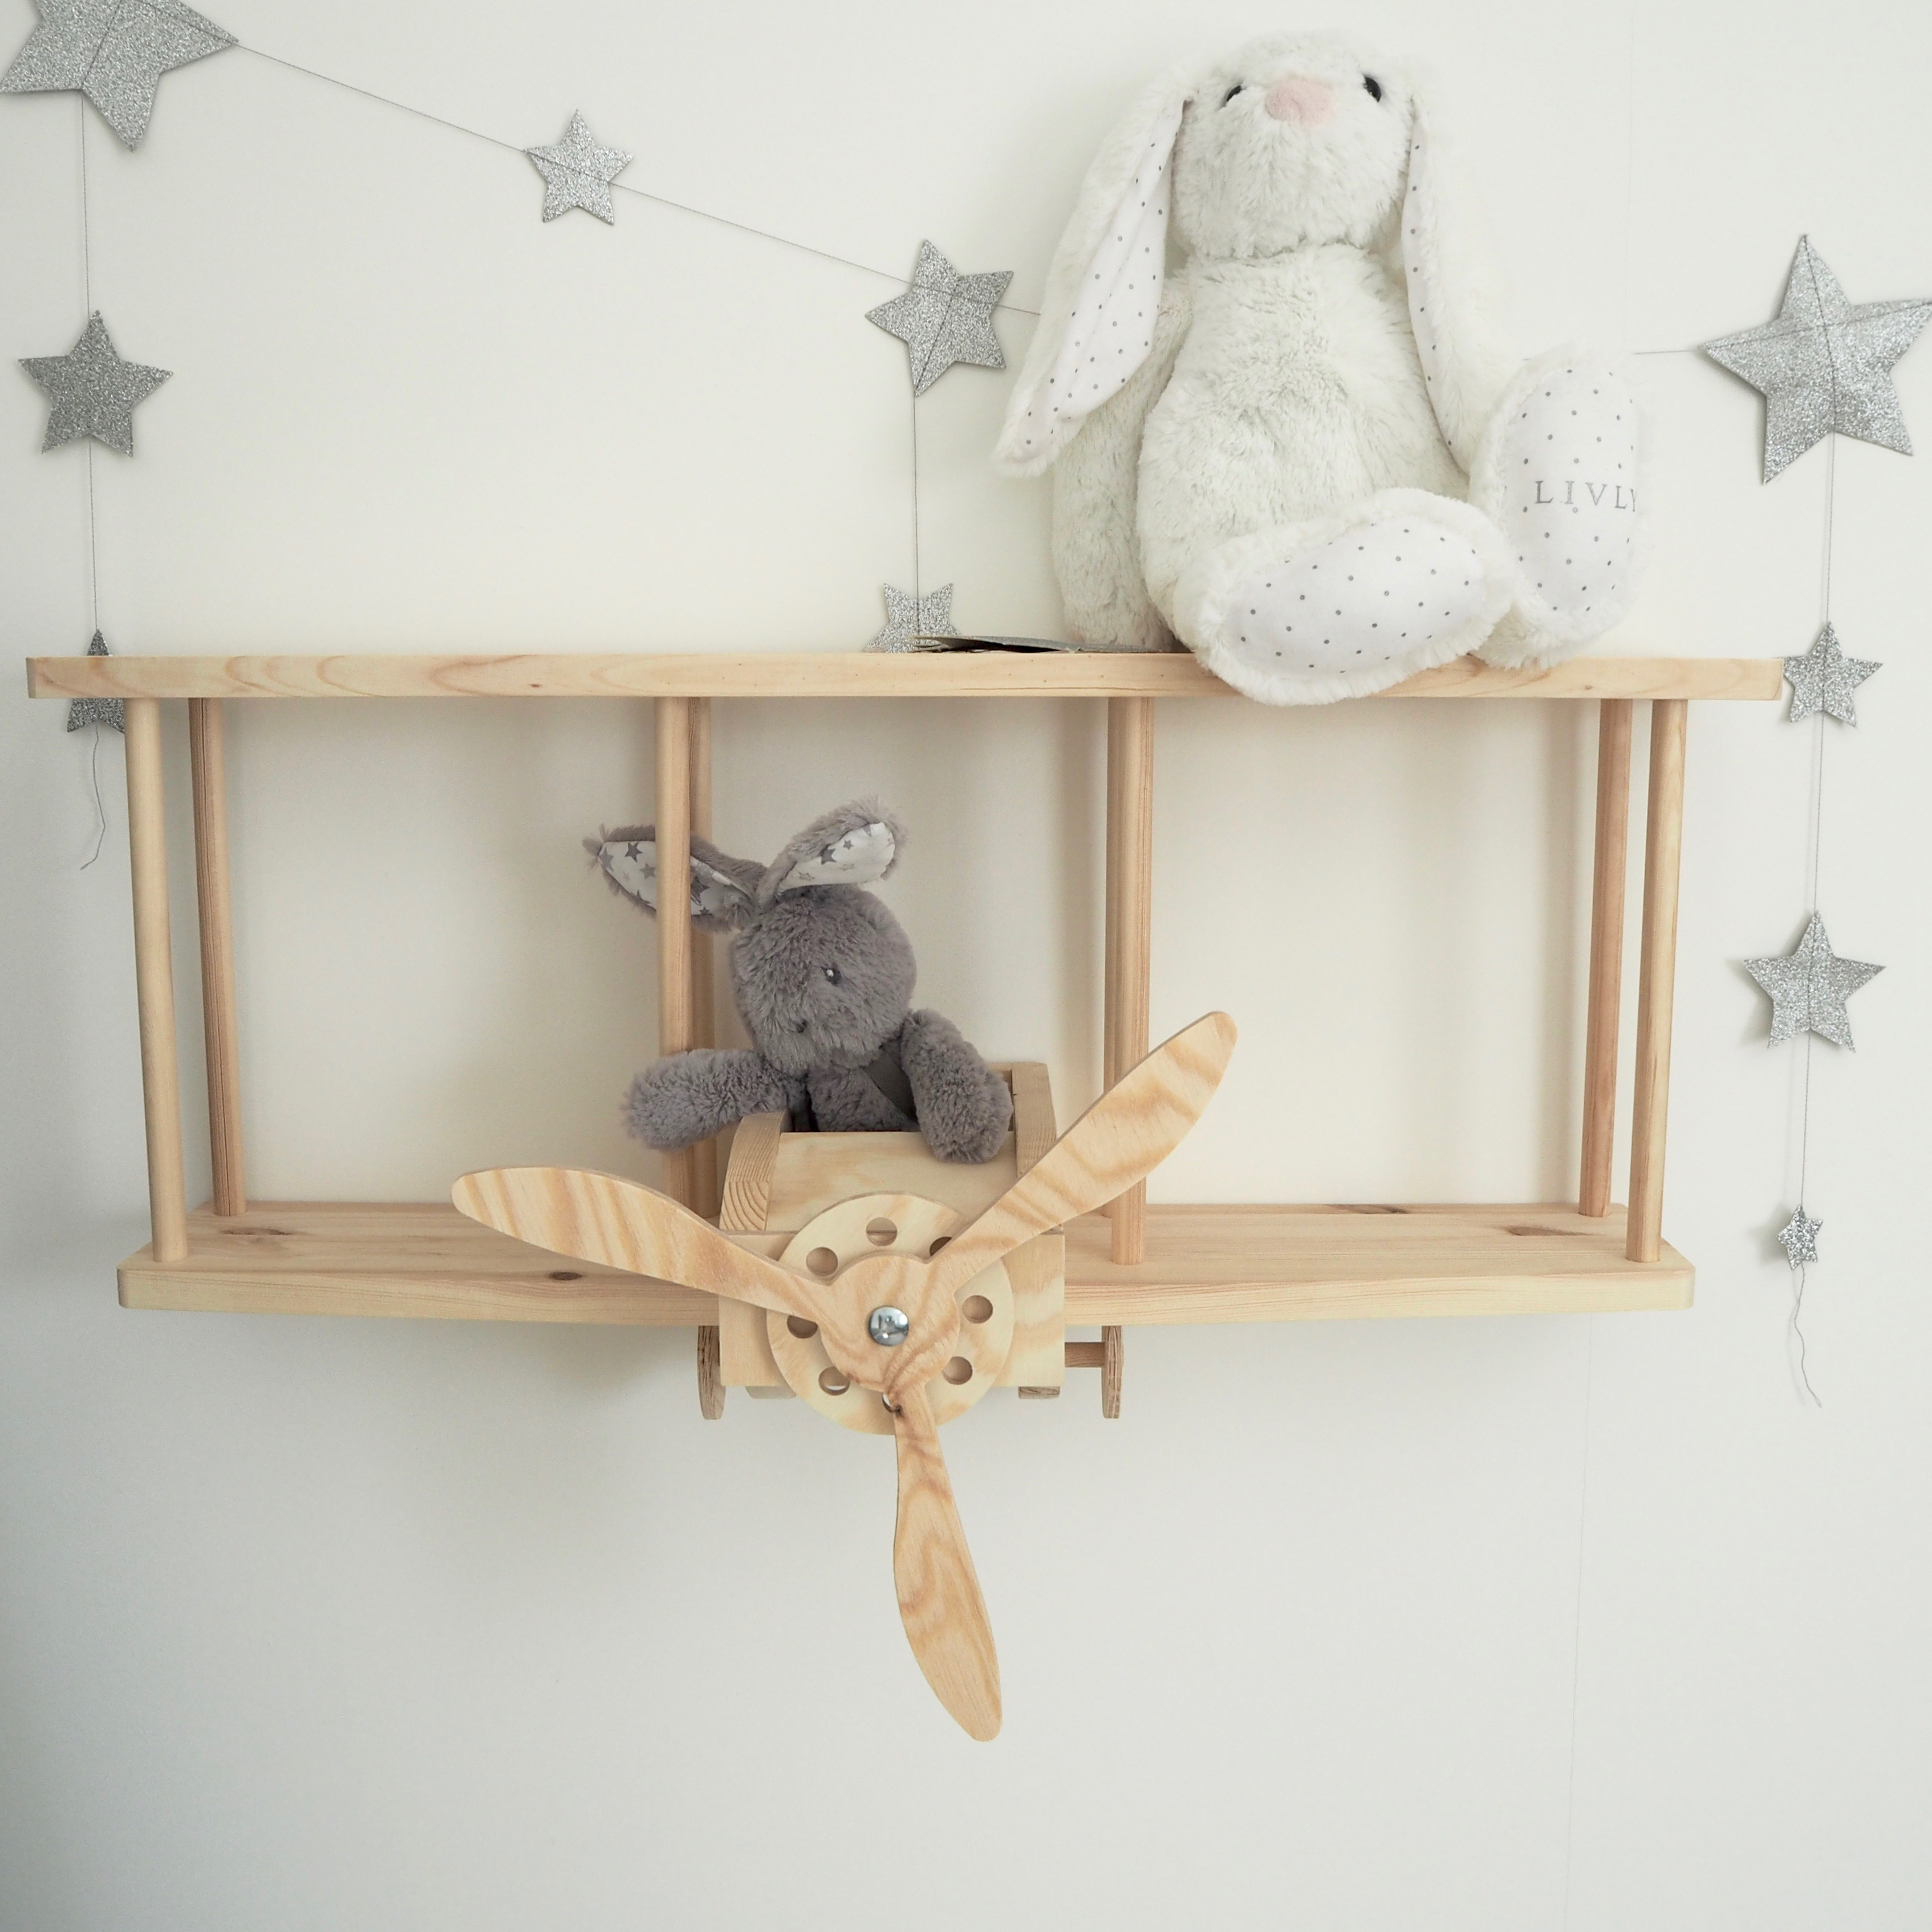 Wooden Airplane Shelf RASKLY